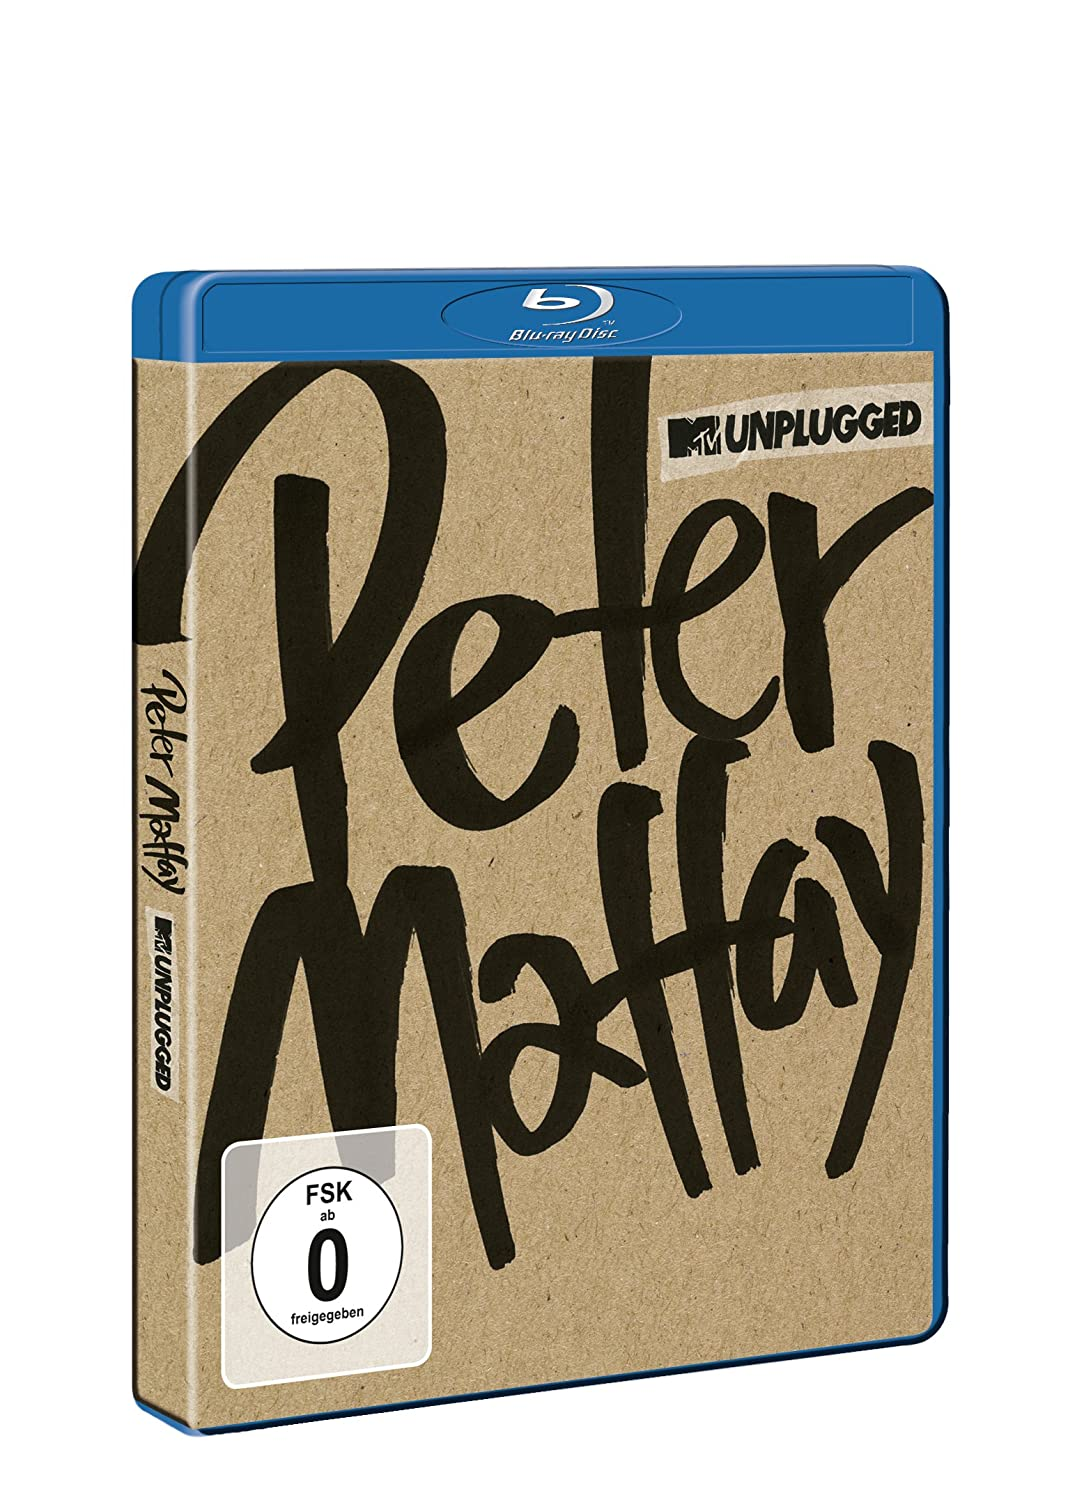 Peter Maffay - MTV Uplugged [Blu-ray]: Amazon.de: Peter Maffay, Hans ...